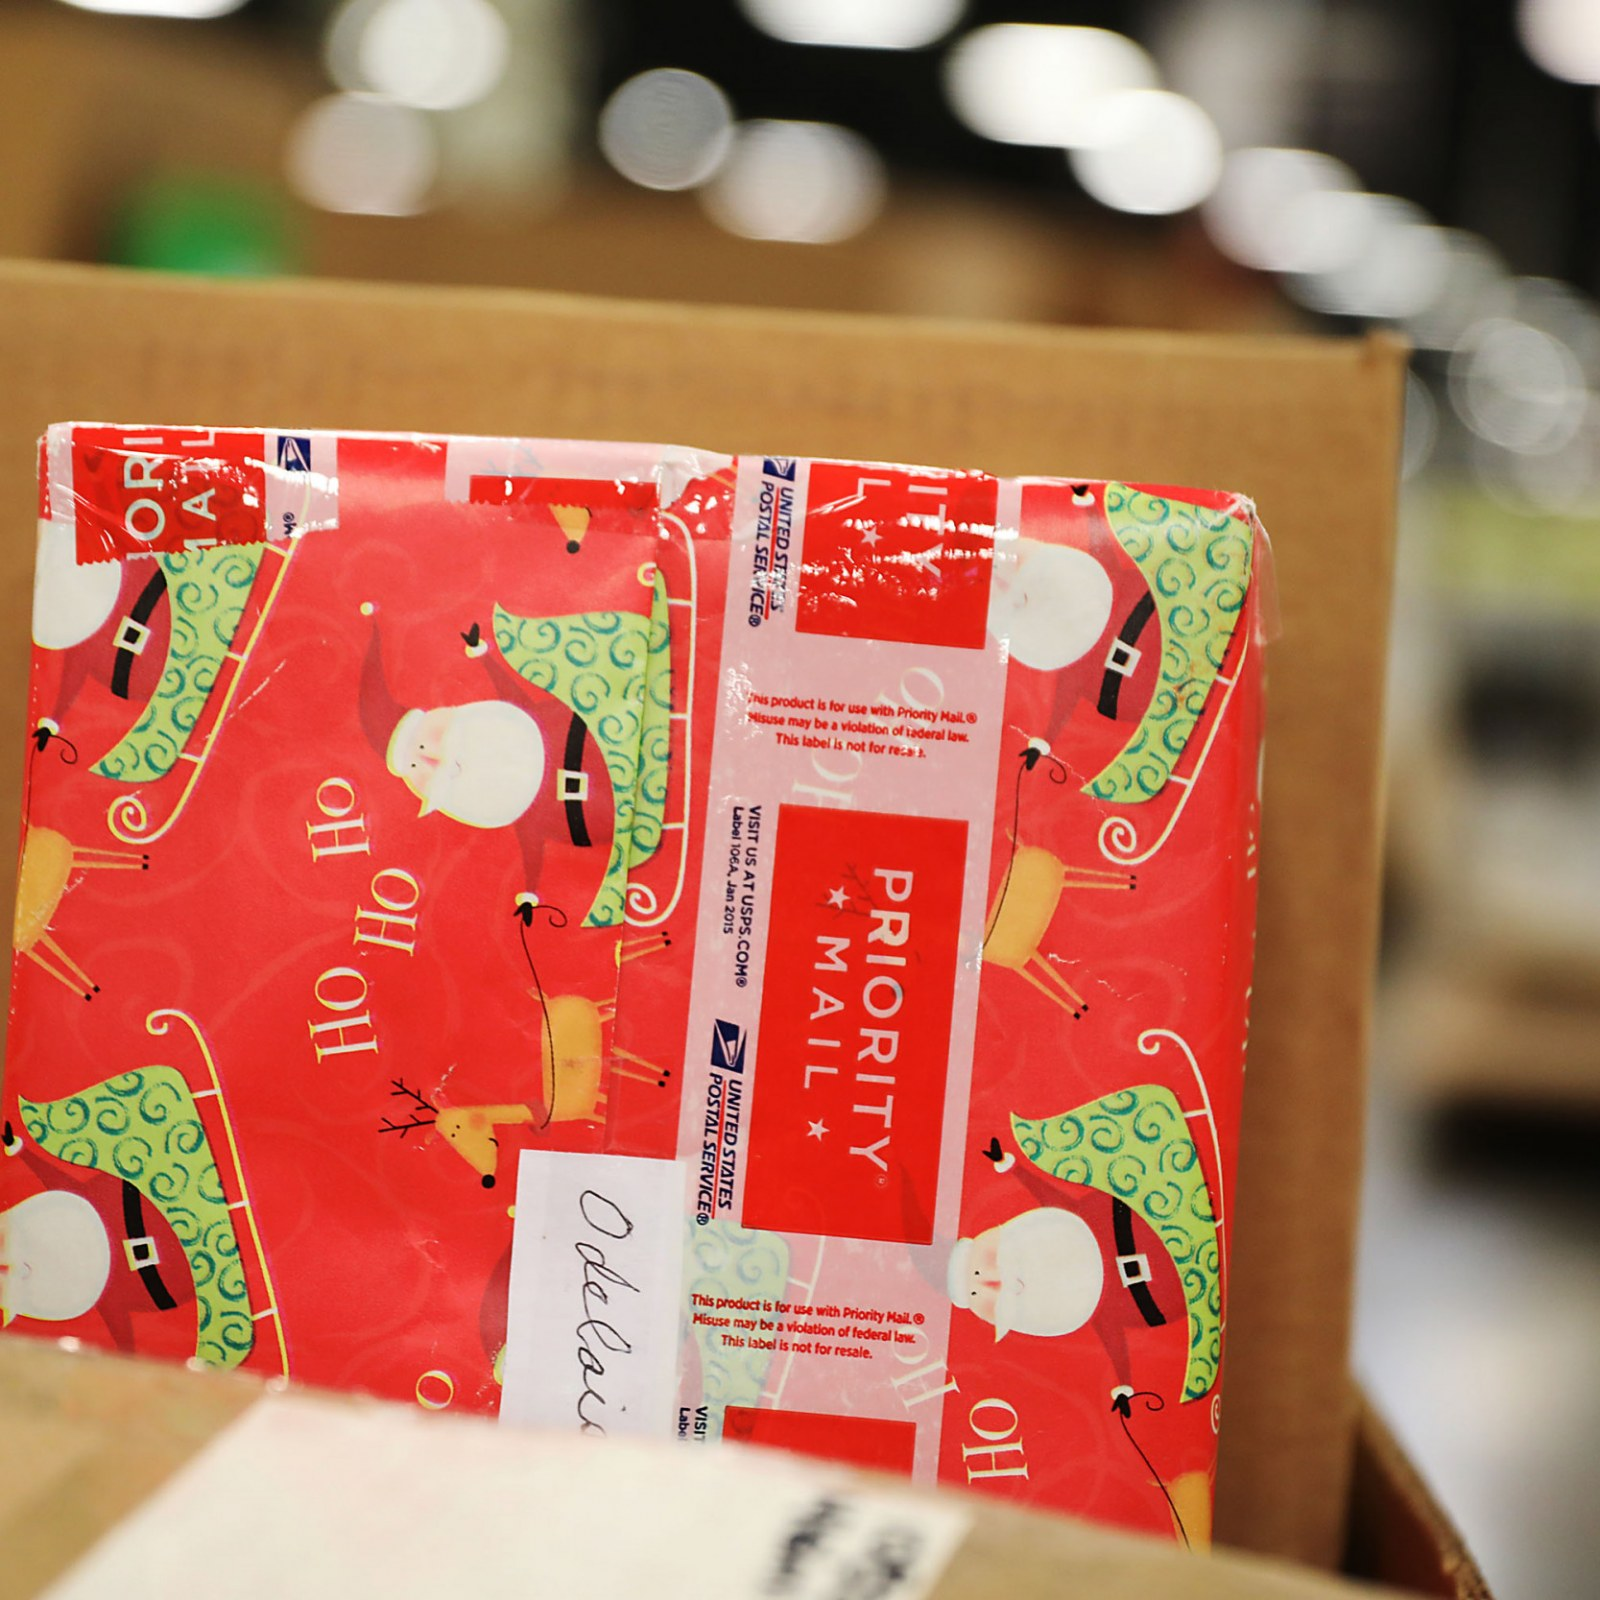 Usps Cut Off Dates Christmas 2020 When Is The Last Day to Mail Christmas Gifts? Holiday Cutoff Dates